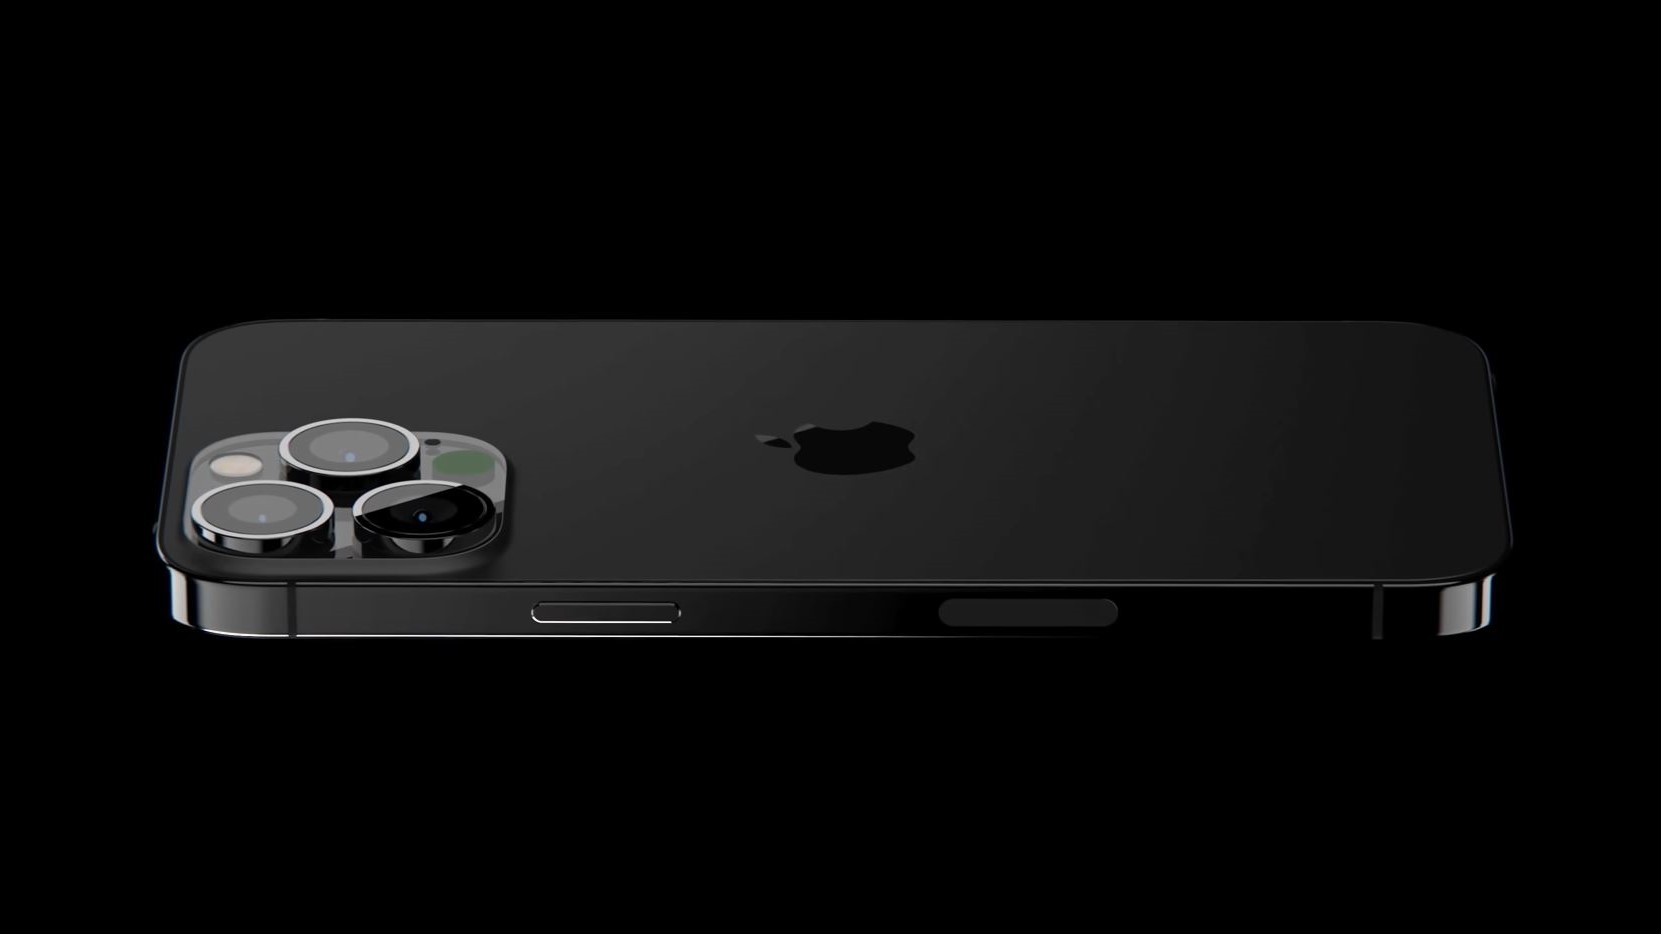 iPhone 13 Pro could come in new matte black color | Tom's Guide